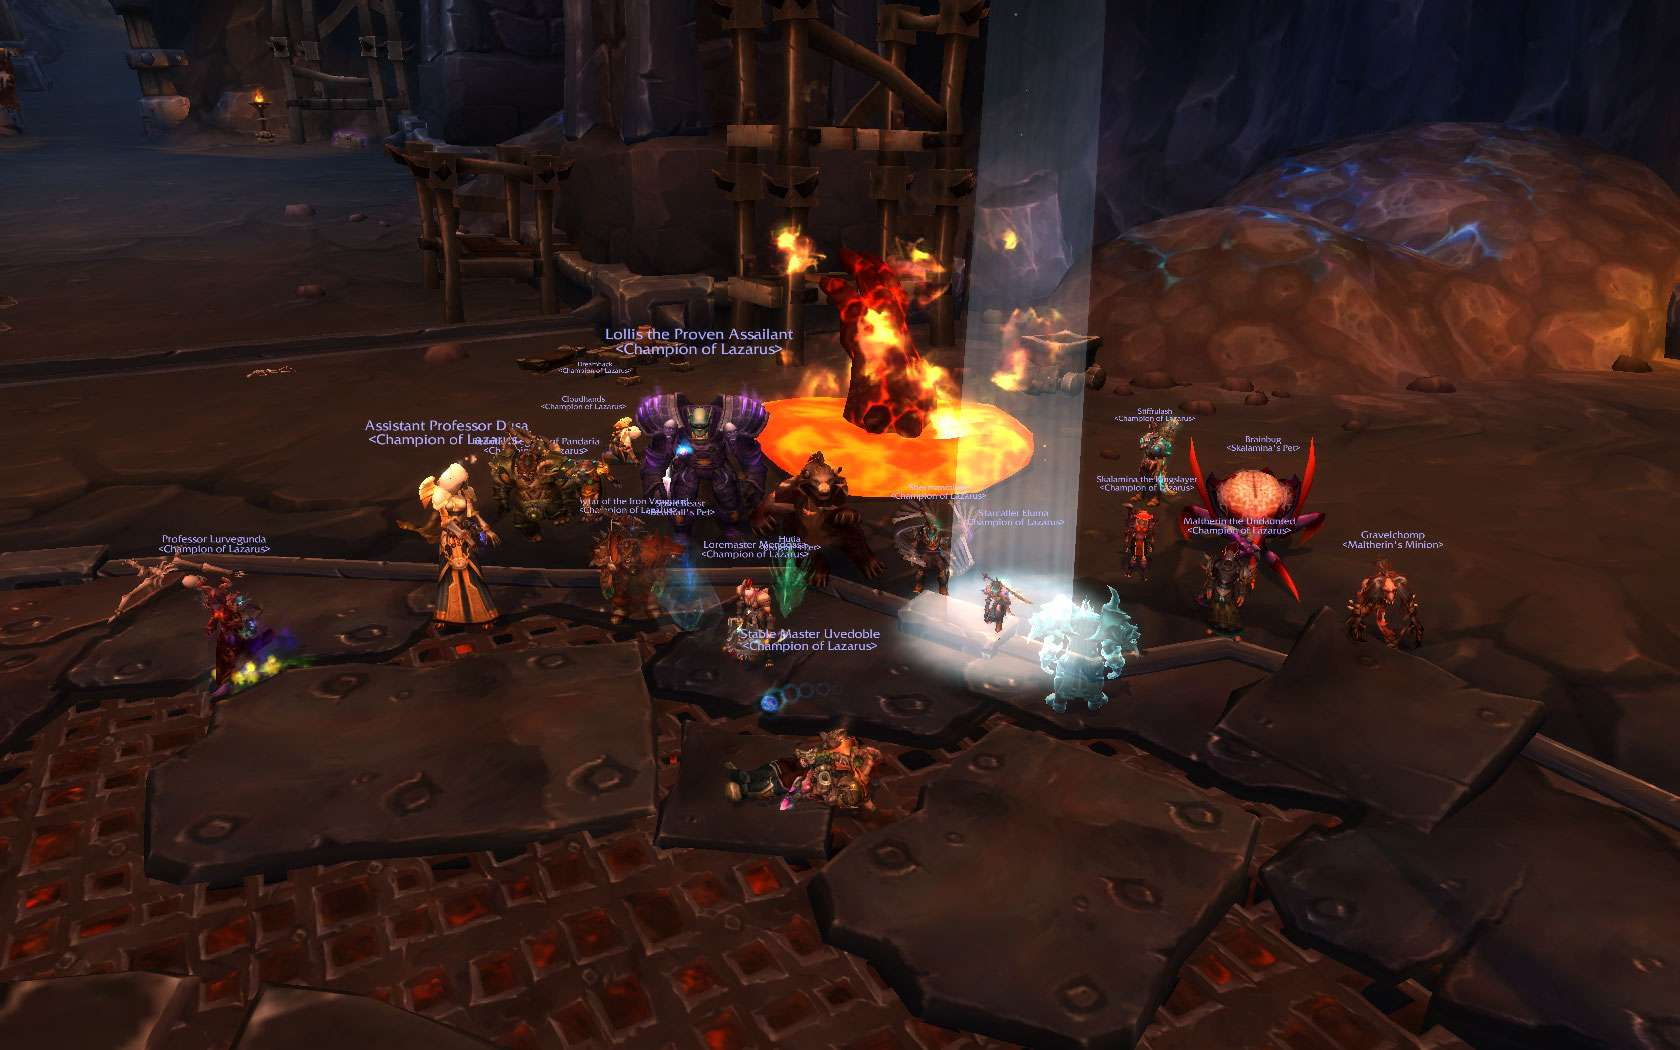 HC Blast Furnace got Blasted! Wowscr15